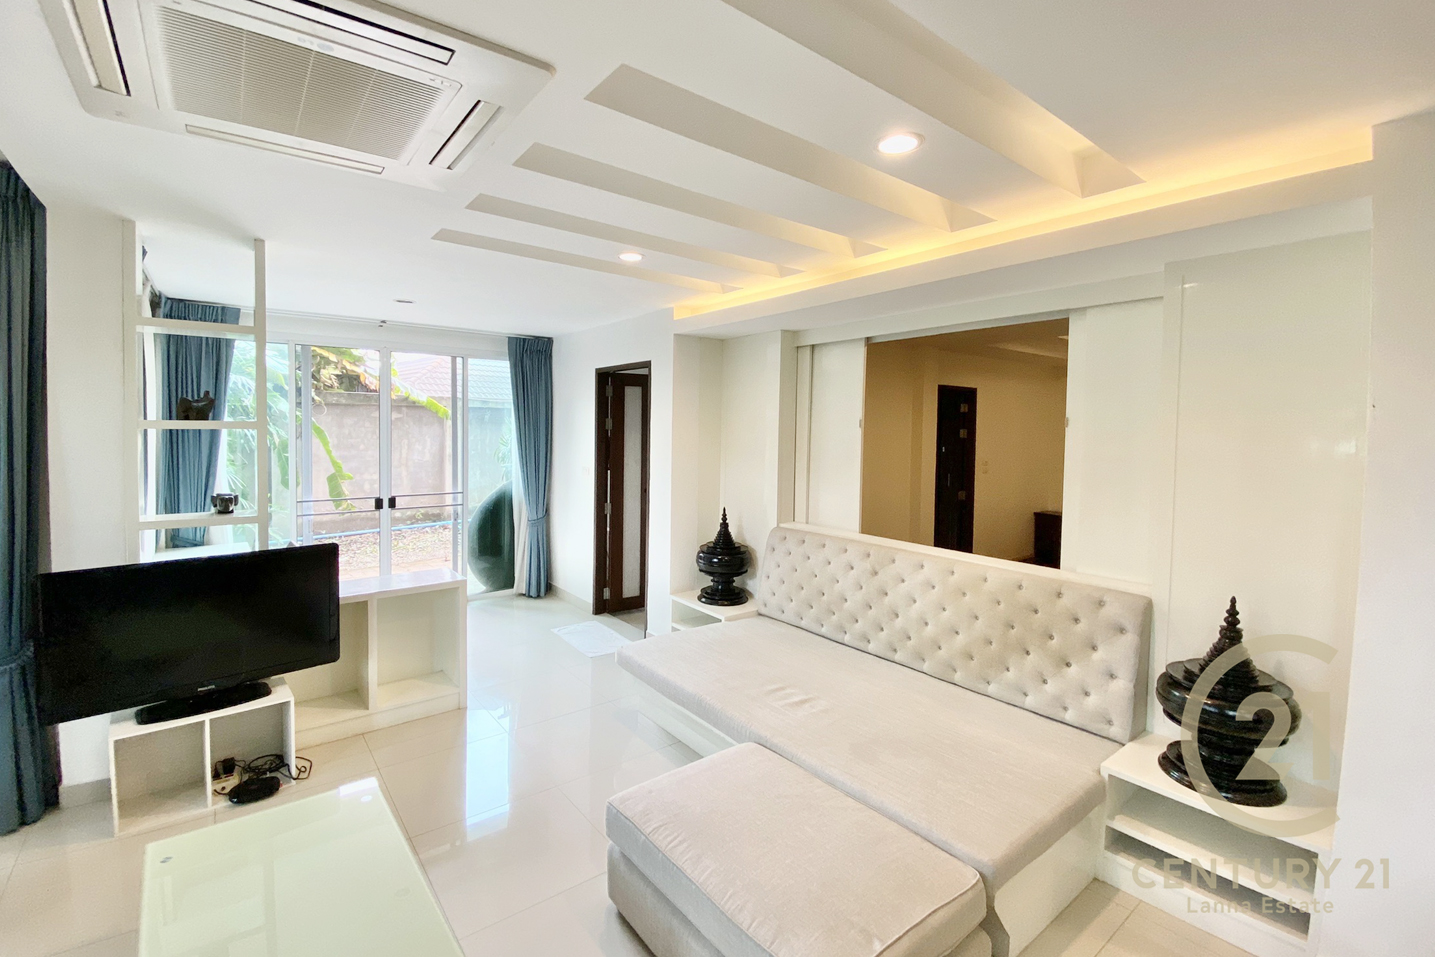 1 Bedroom Condo for Rent or Sale atNa TaRa Exclusive Residences located at Su Thep, Chiang Mai.